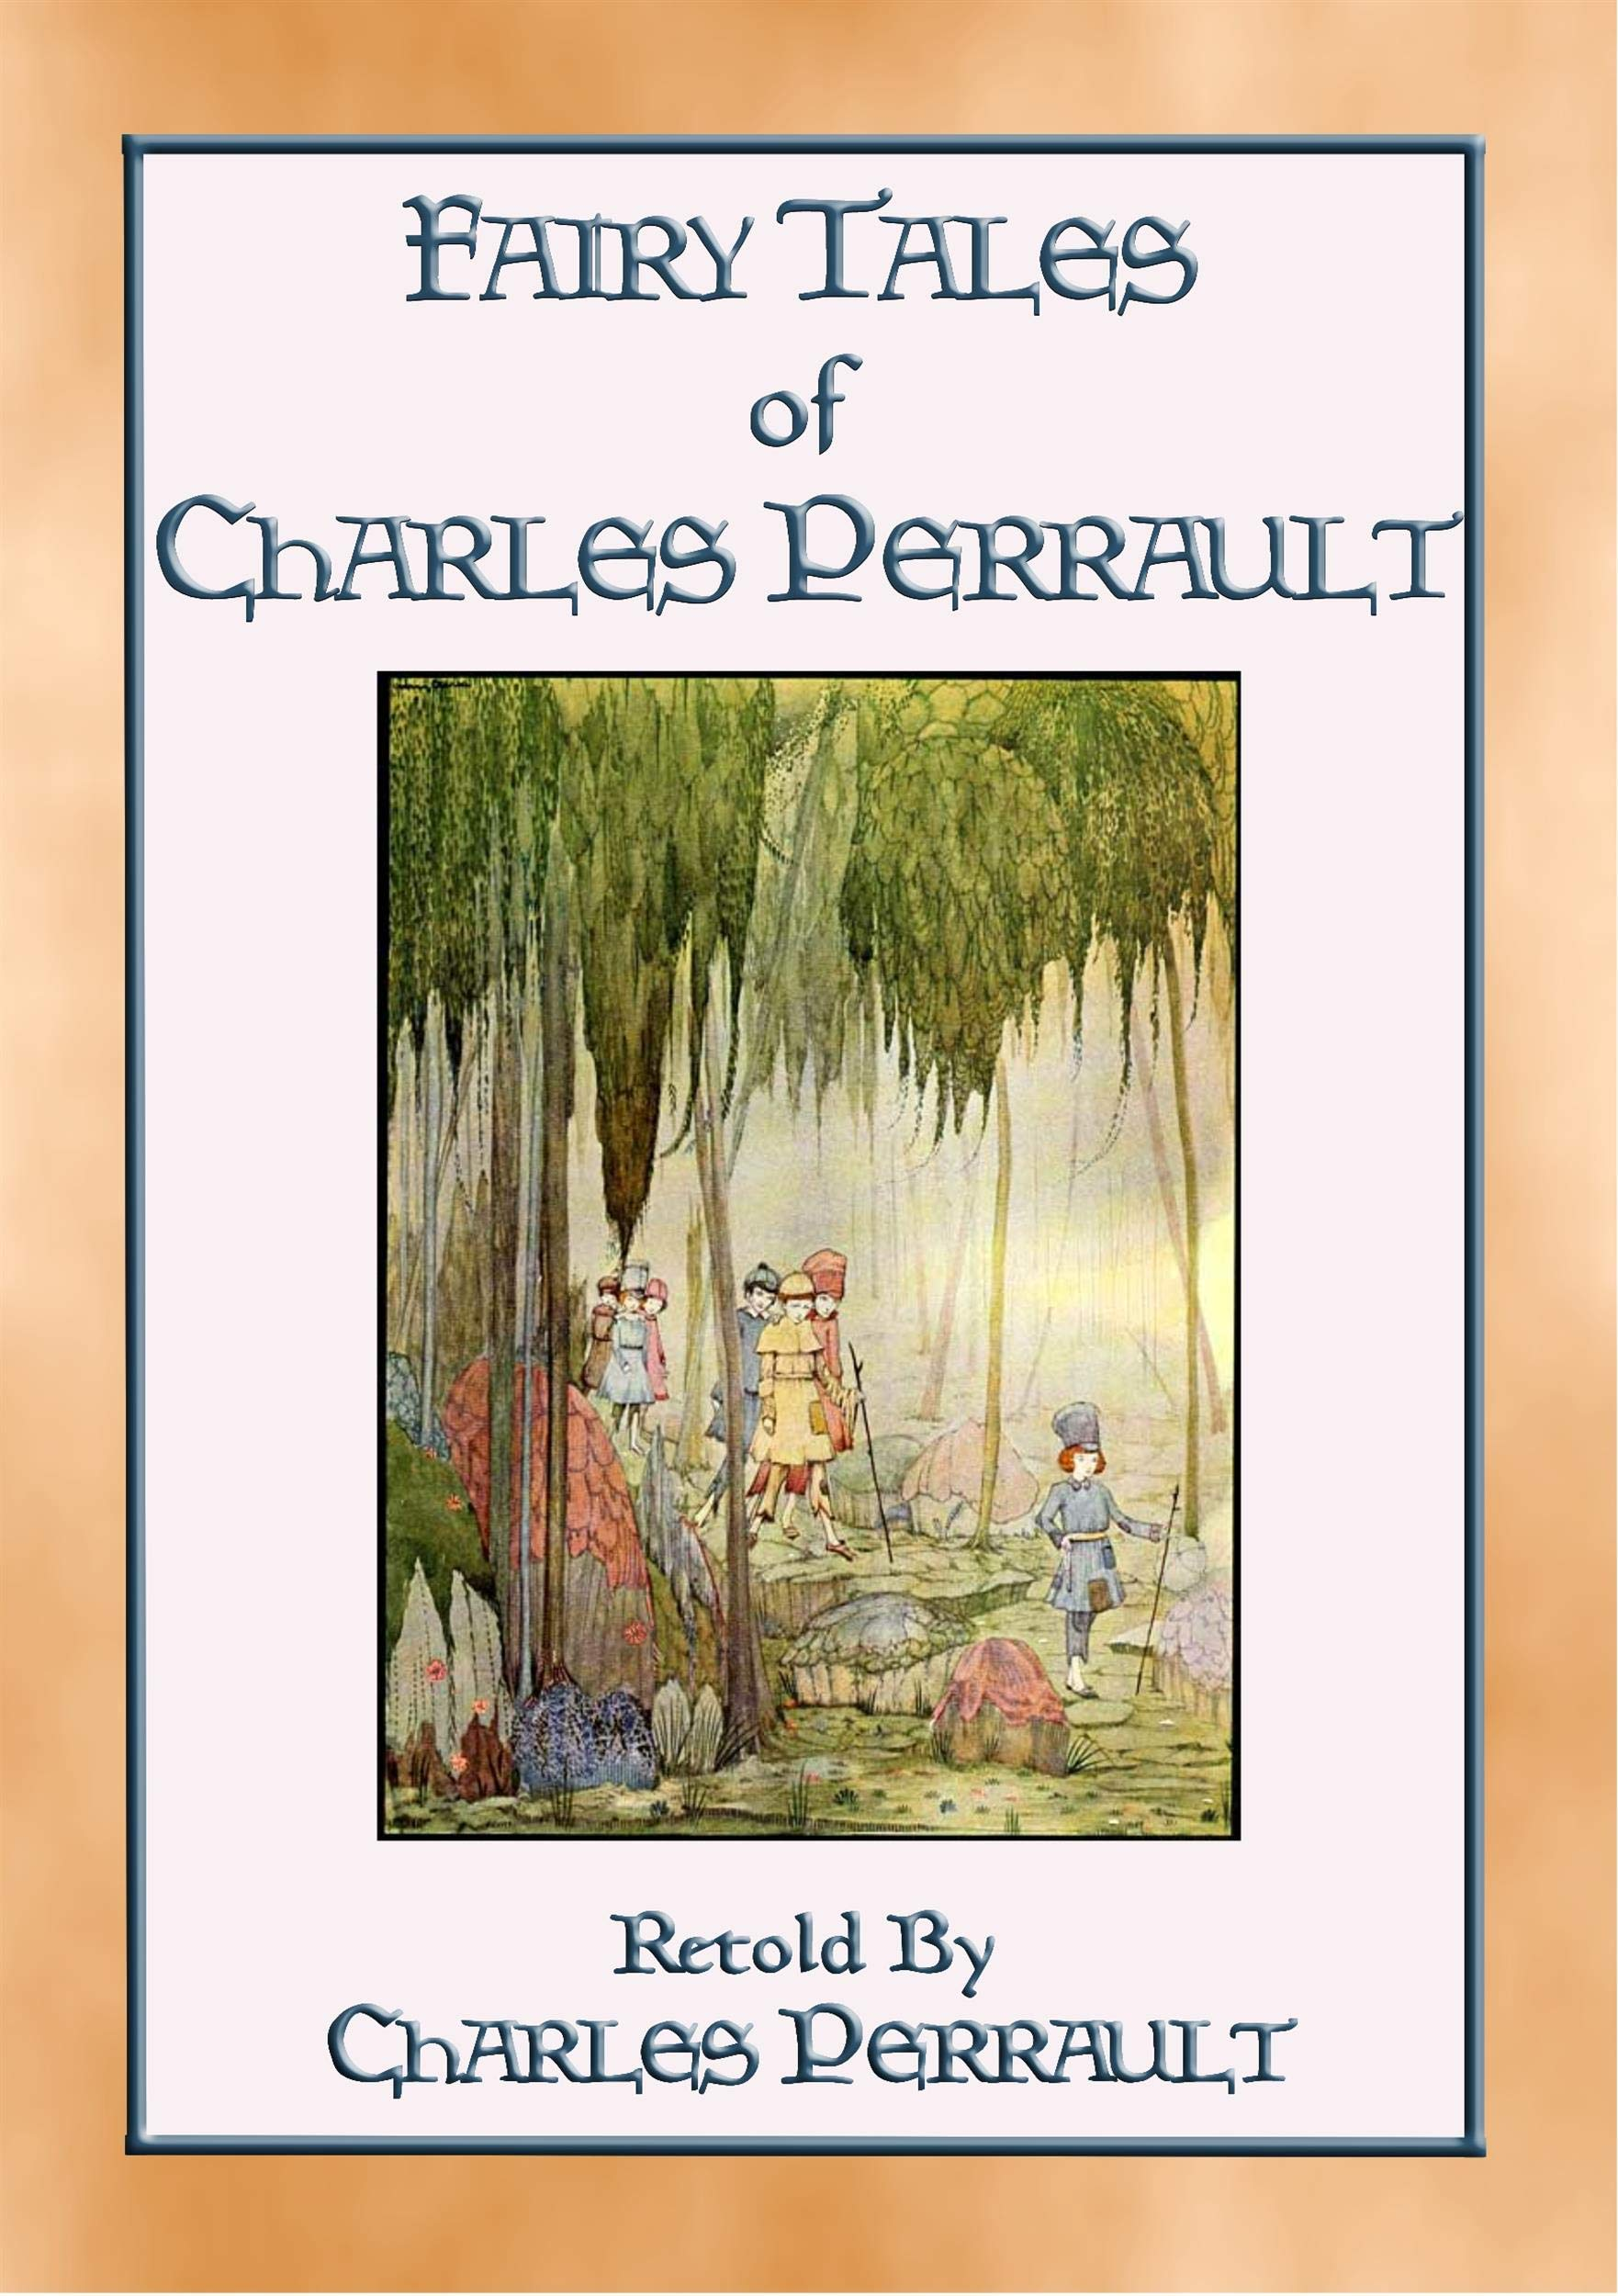 THE FAIRY TALES OF CHARLES PERRAULT - Illustrated Fairy Tales for Children